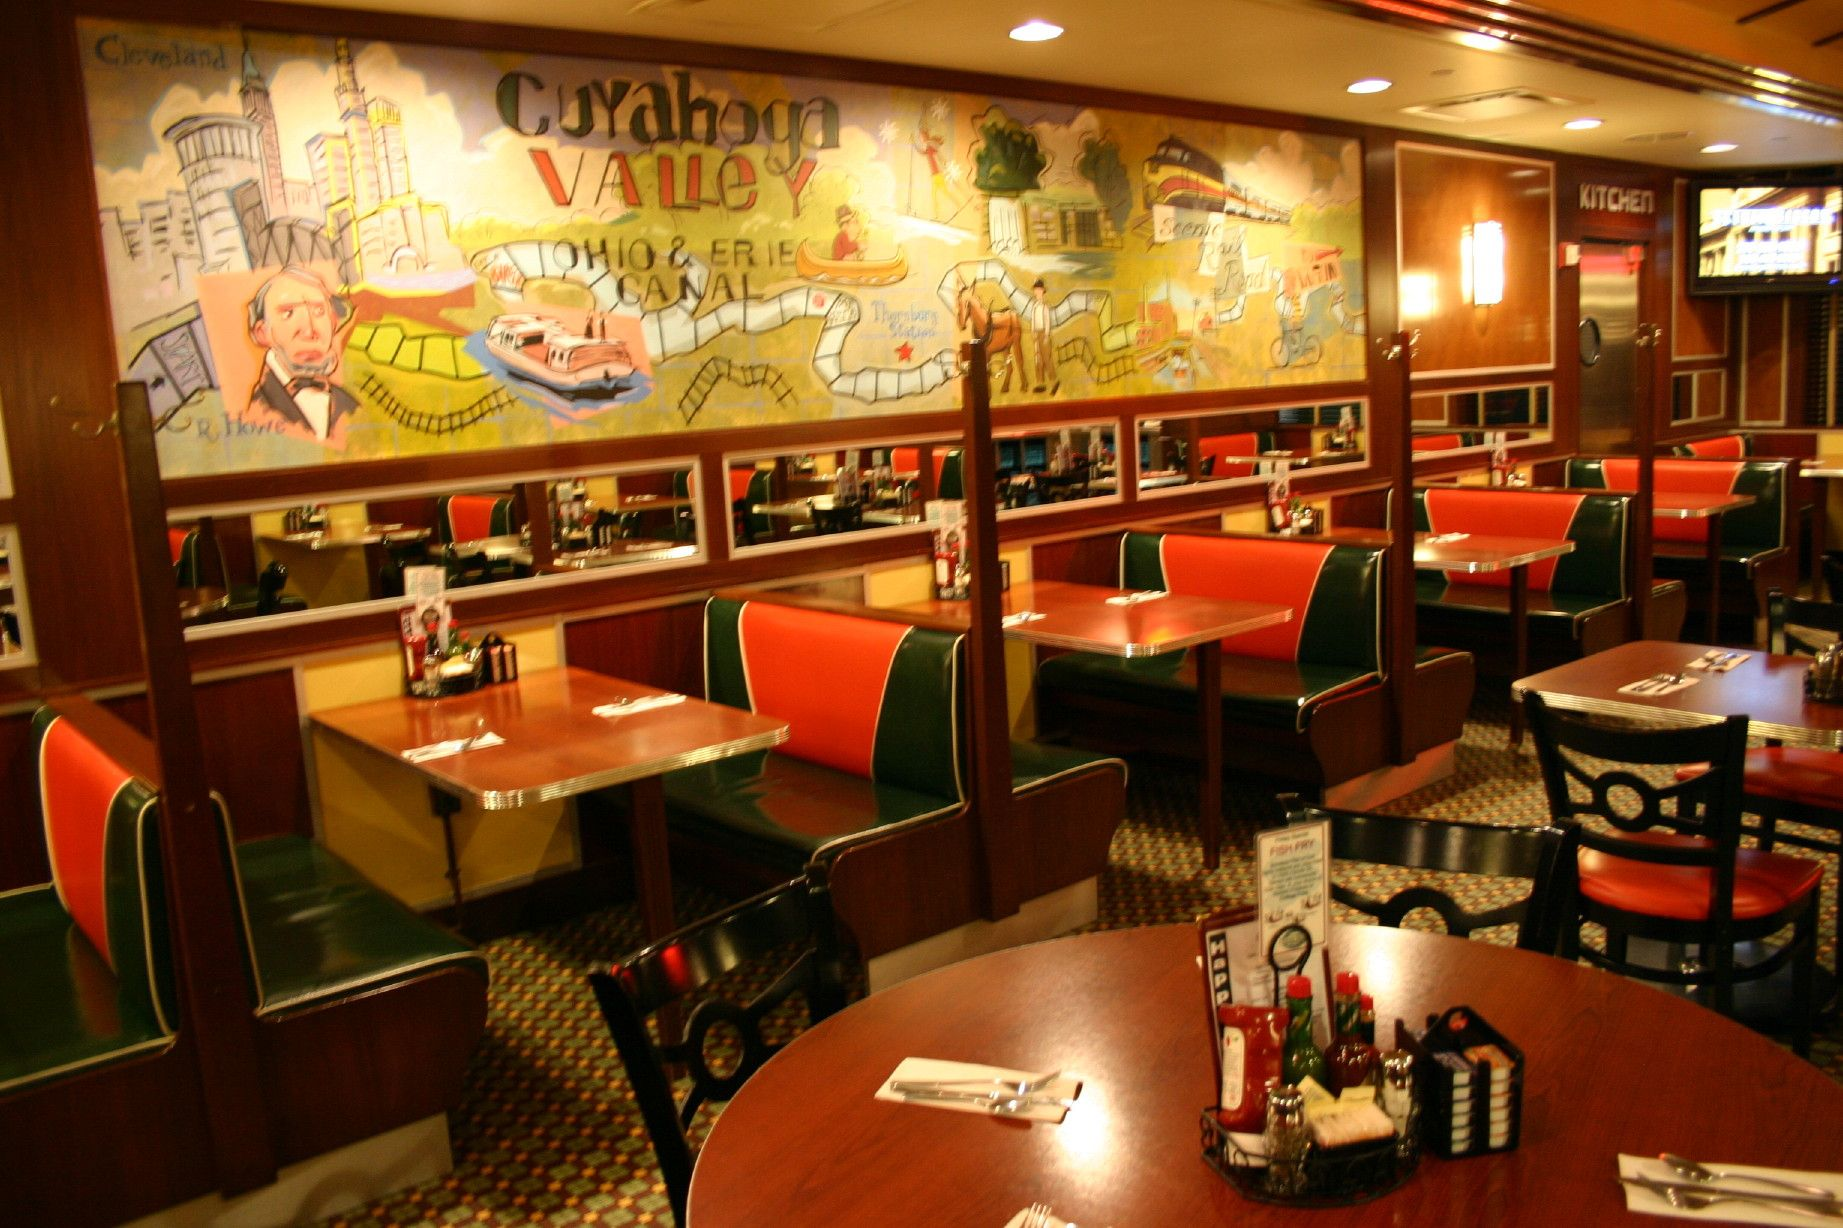 Yours Truly Restaurant At Rockside And Canal In Valley View Ohio